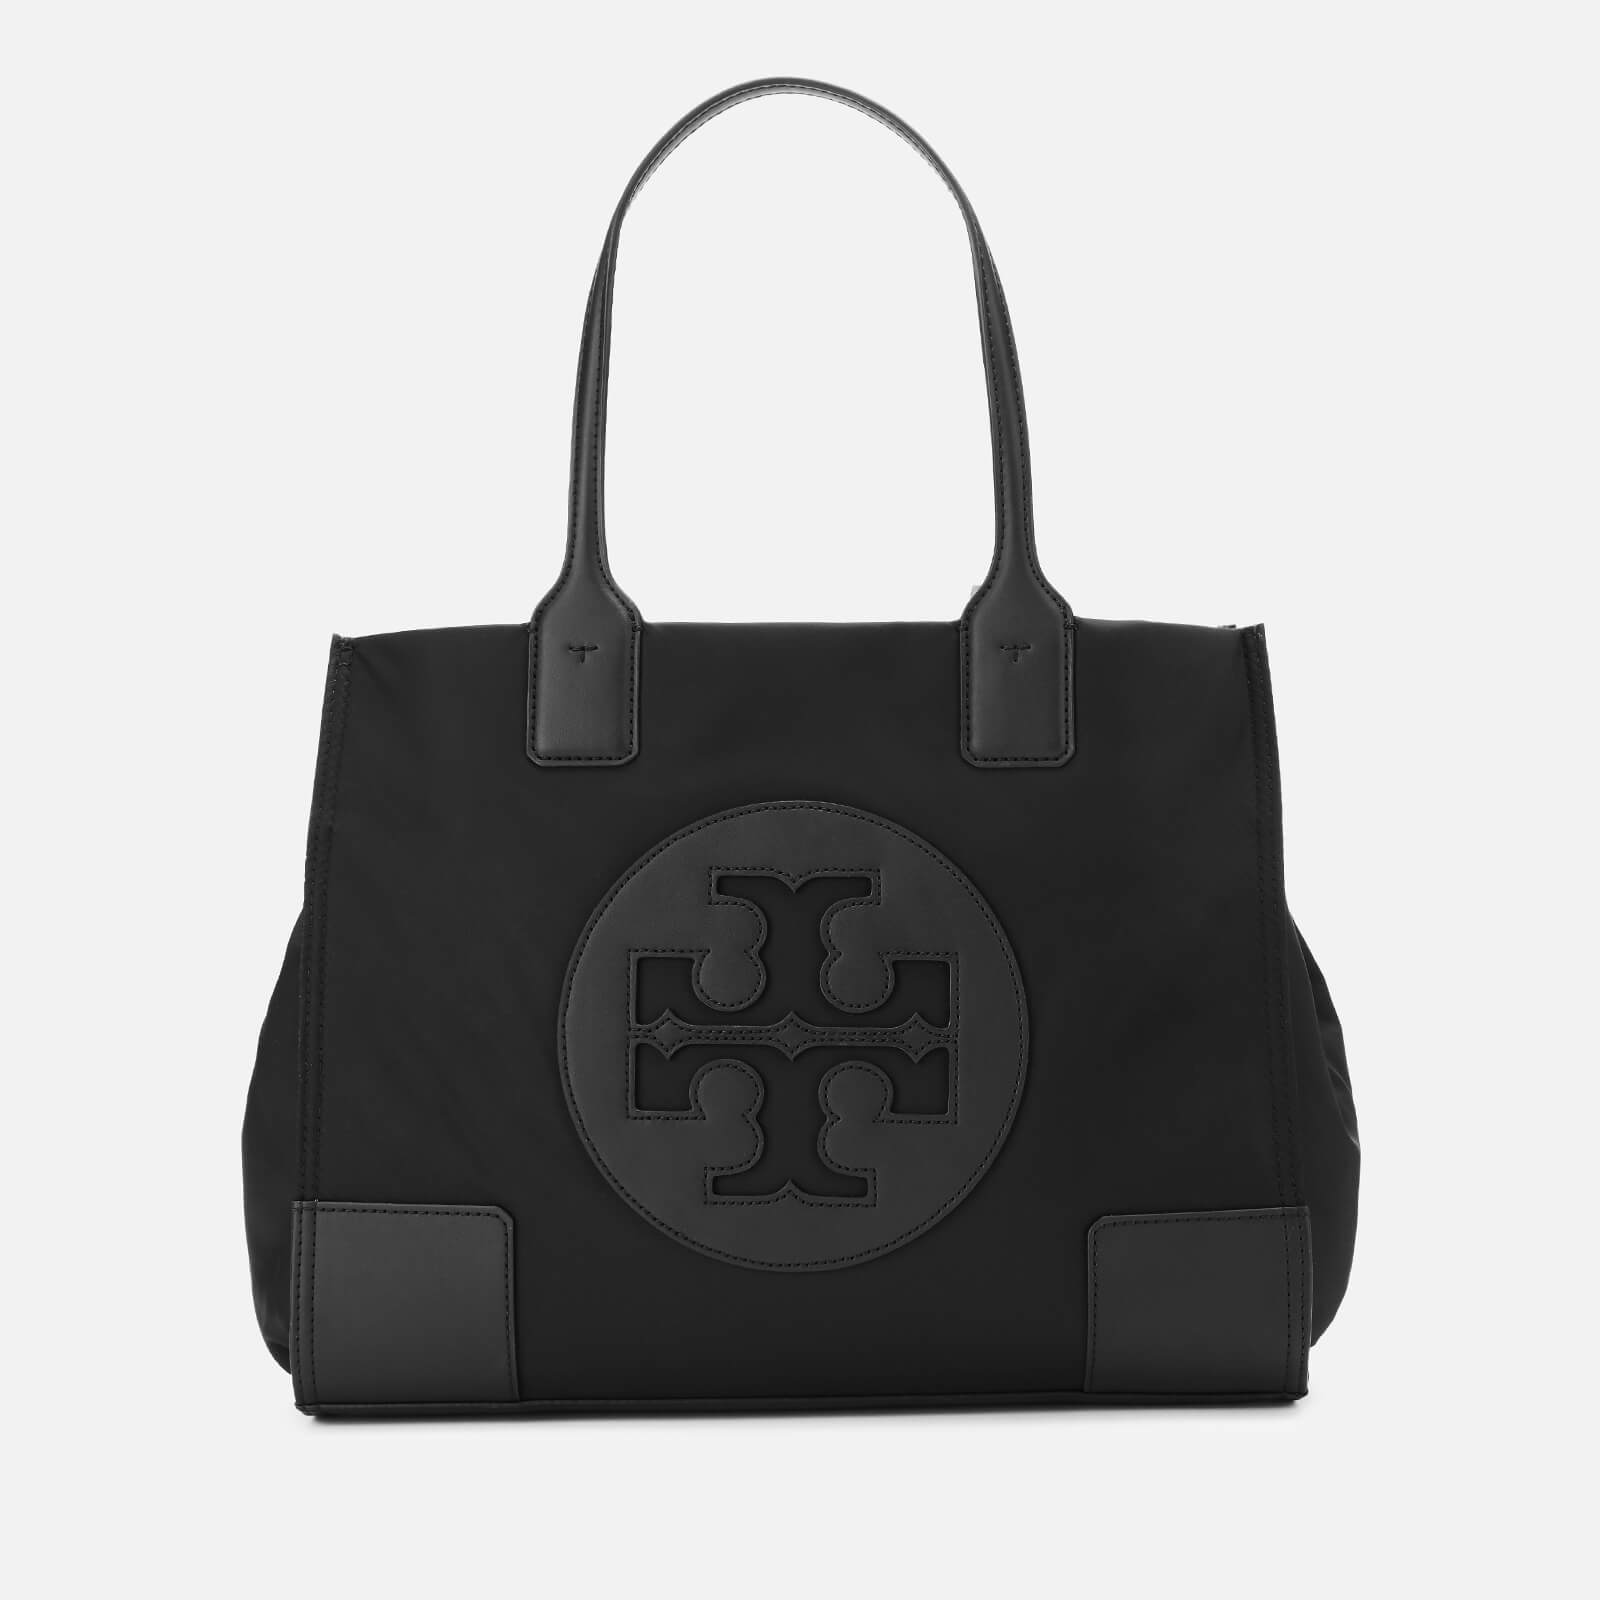 Tory Burch Women's Ella Mini Tote Bag - Black